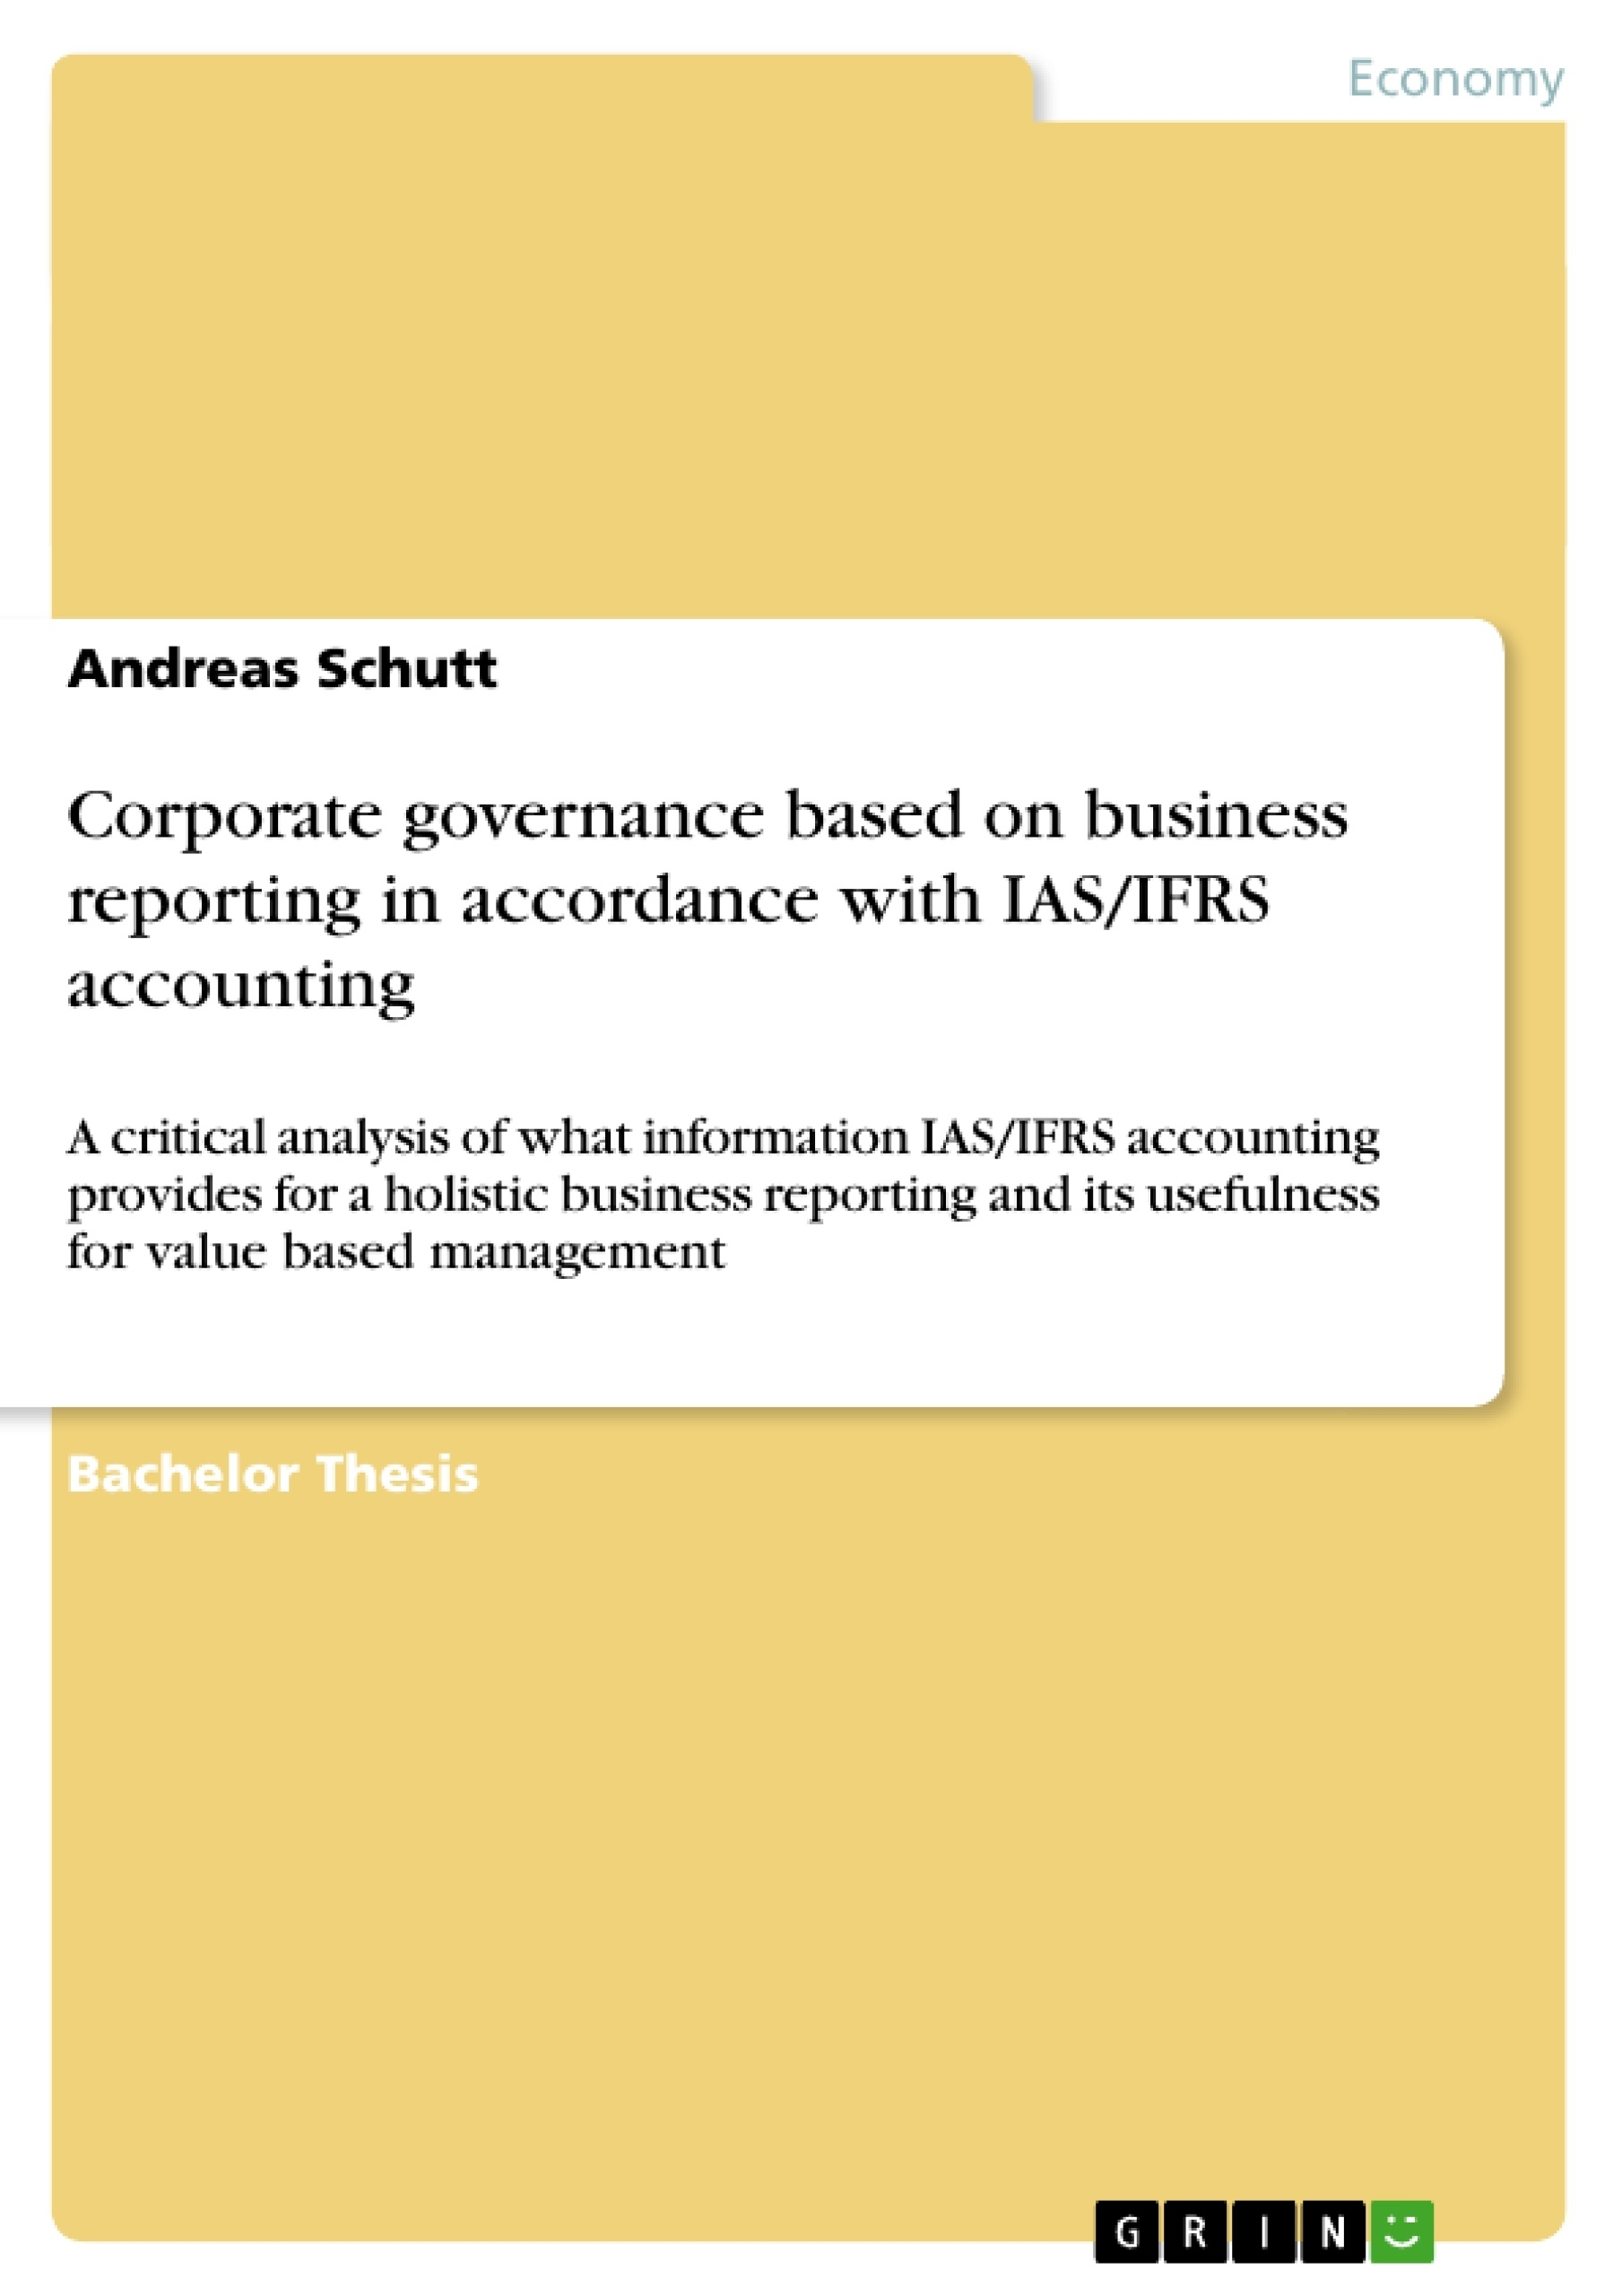 Title: Corporate governance based on business reporting in accordance with IAS/IFRS accounting